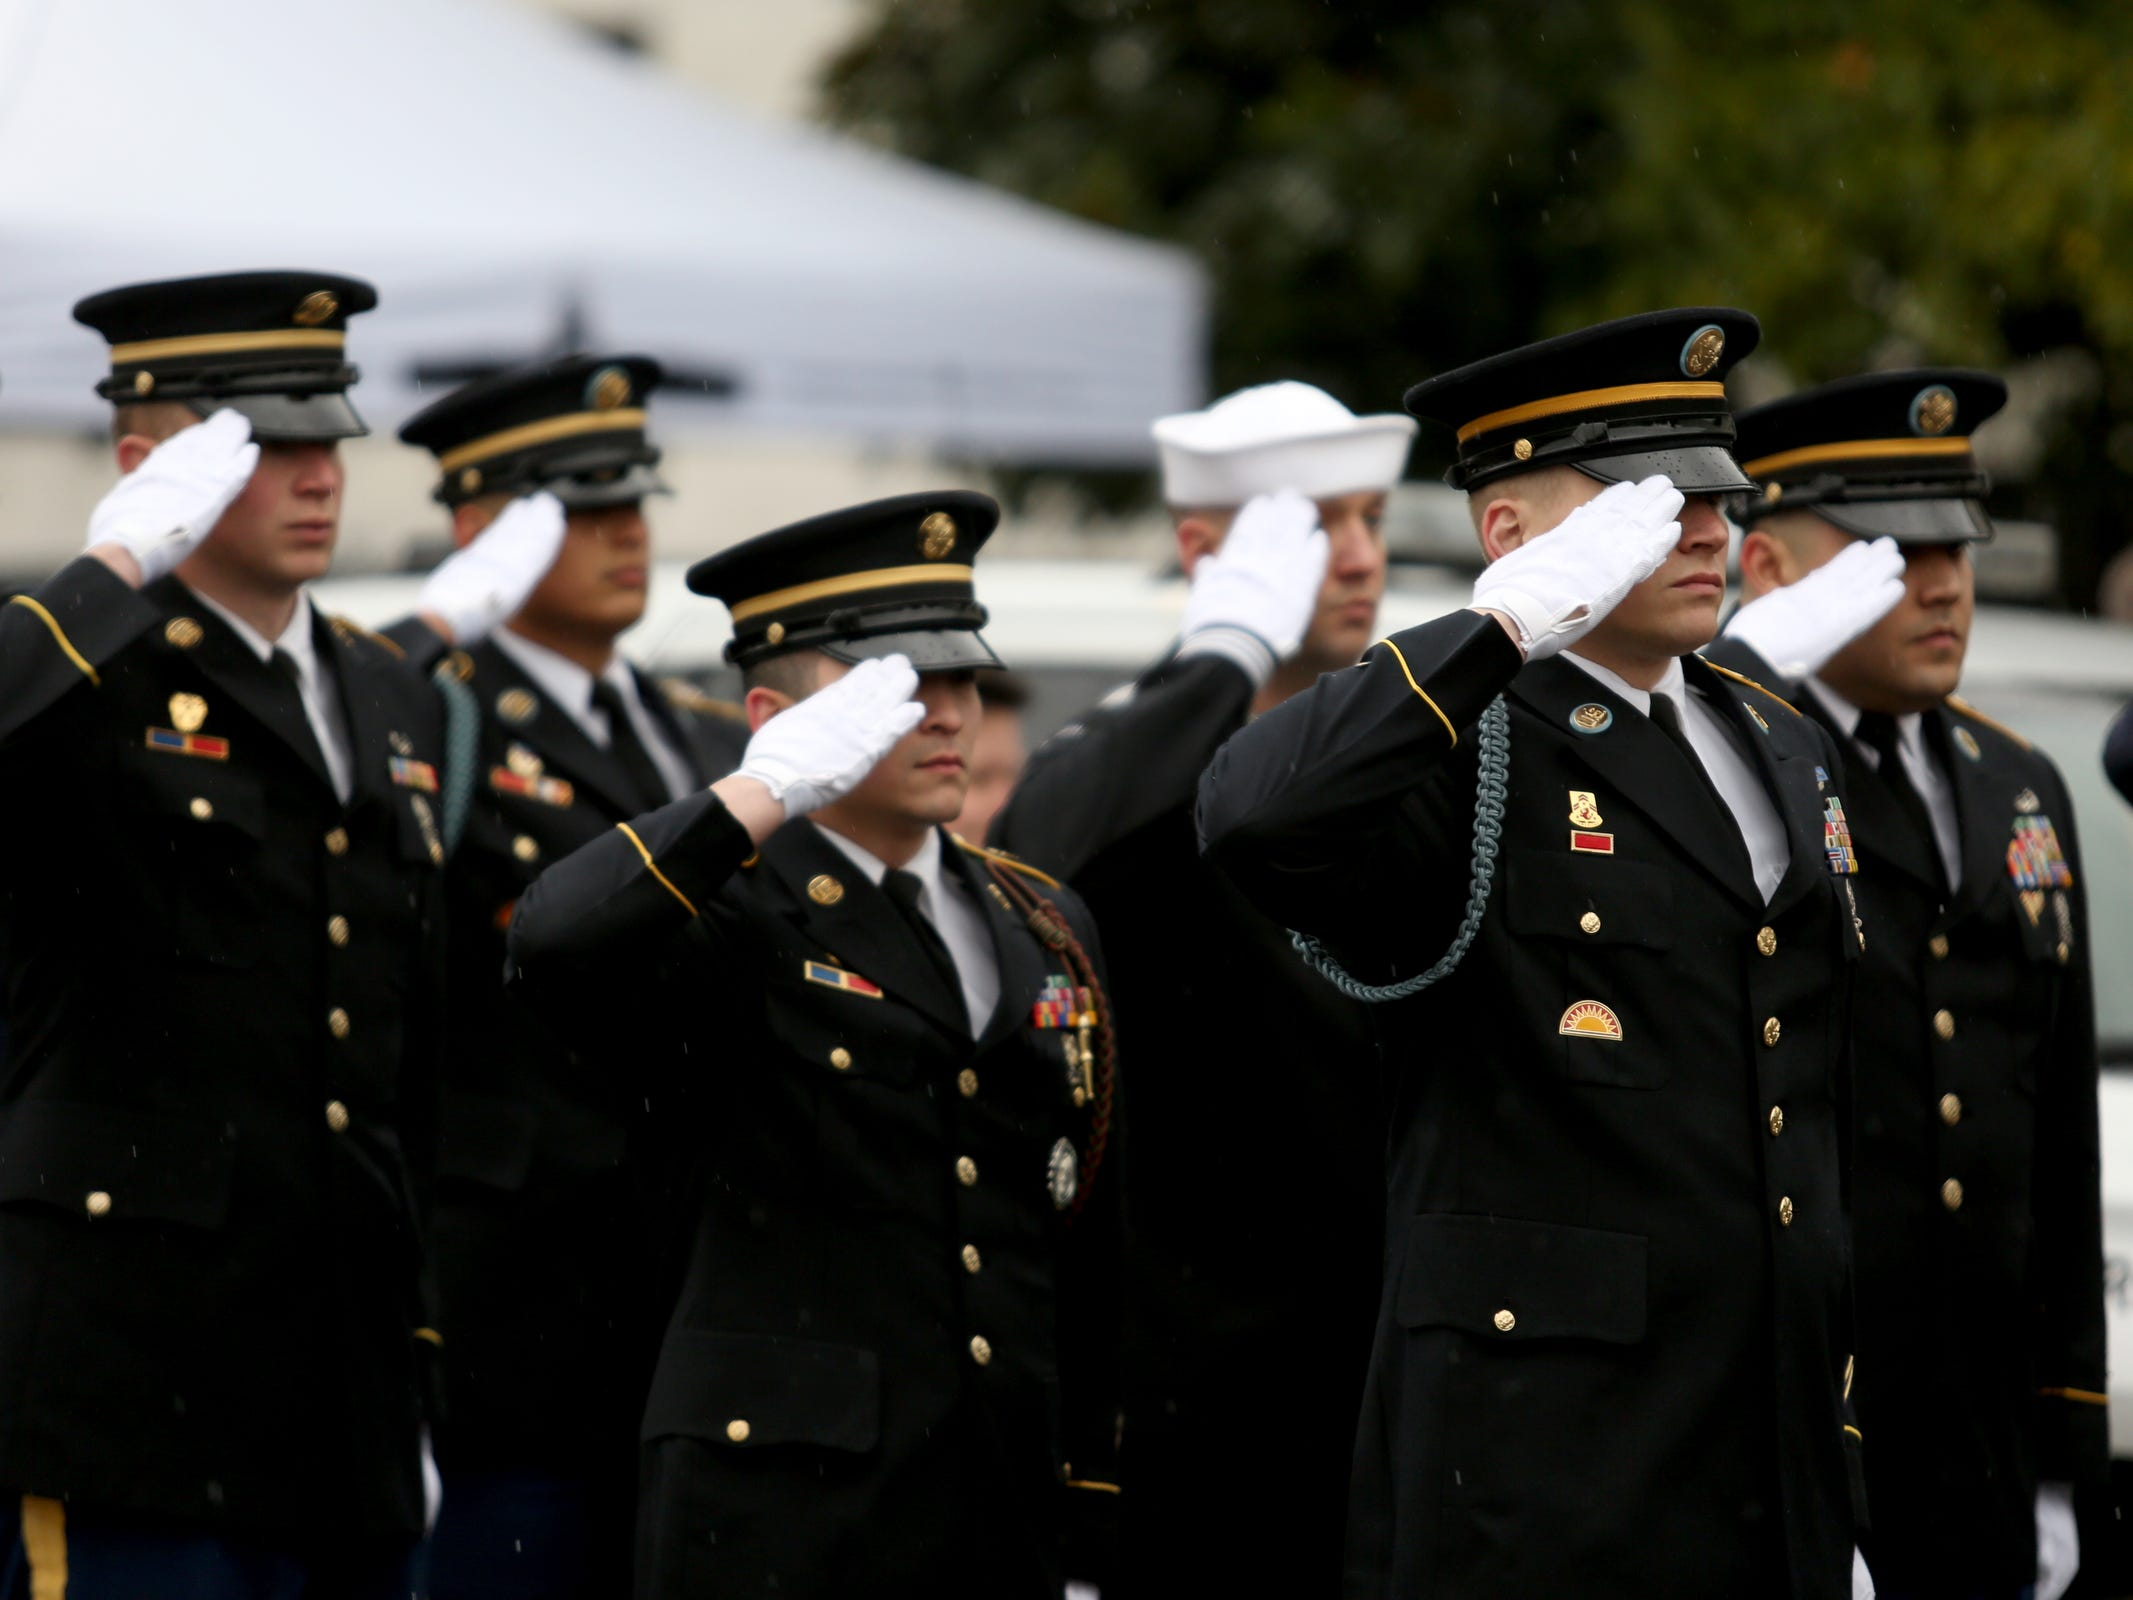 Military members salute during the state funeral for Secretary of State Dennis Richardson at the Oregon State Capitol in Salem on Wednesday, March 6, 2019.